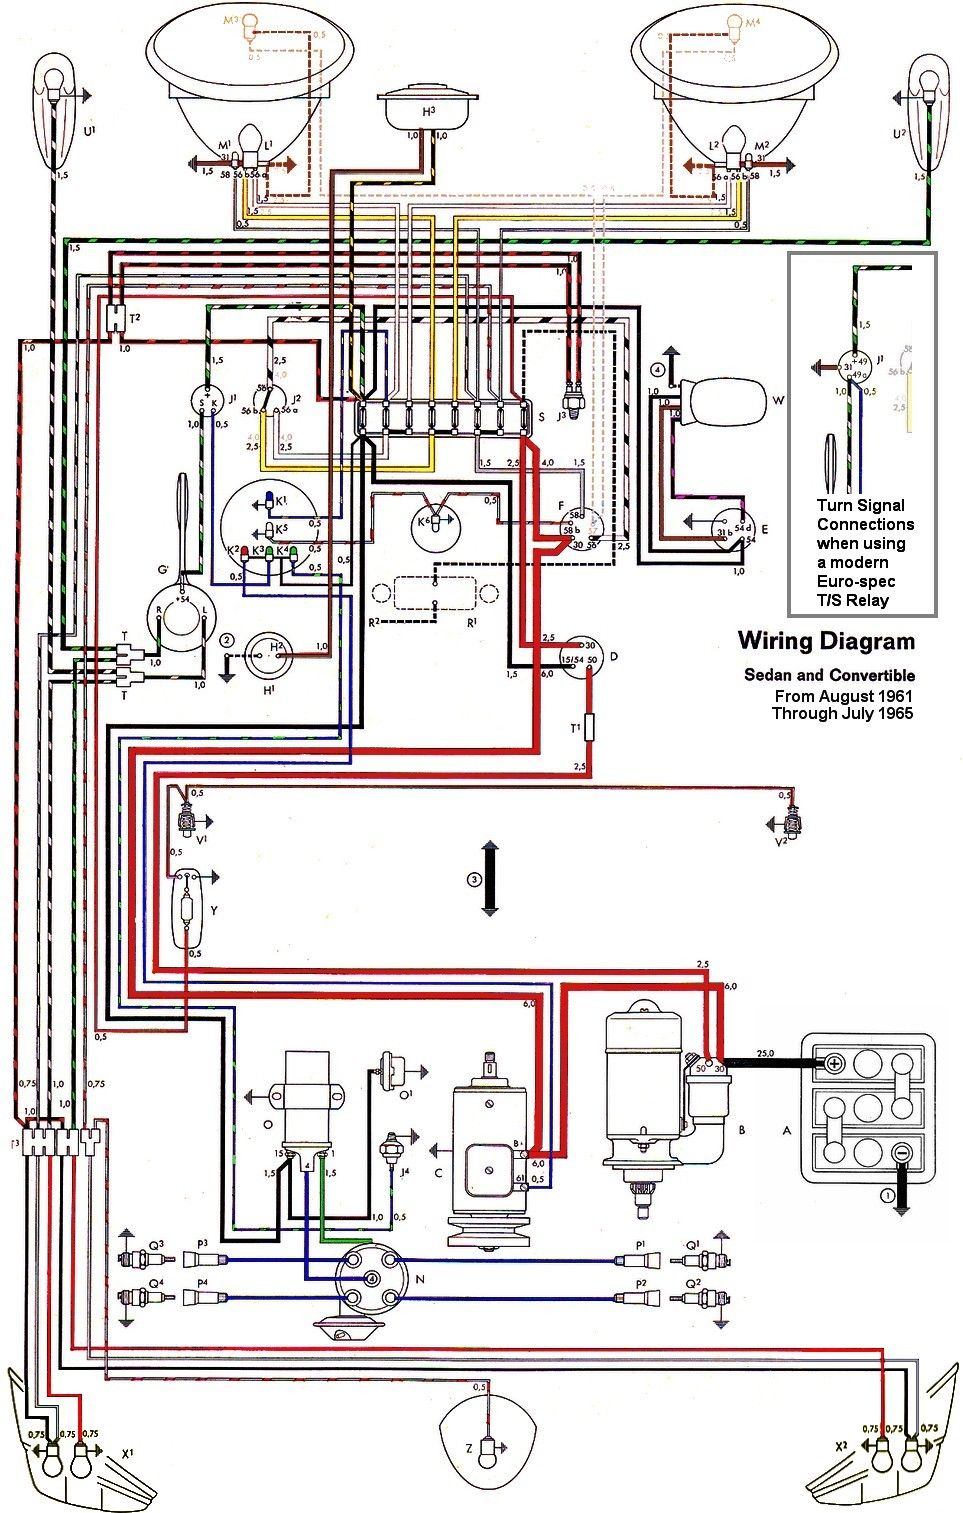 hight resolution of wiring diagram vw beetle sedan and convertible 1961 1965 vw 1965 lincoln wiring diagram 1965 vw